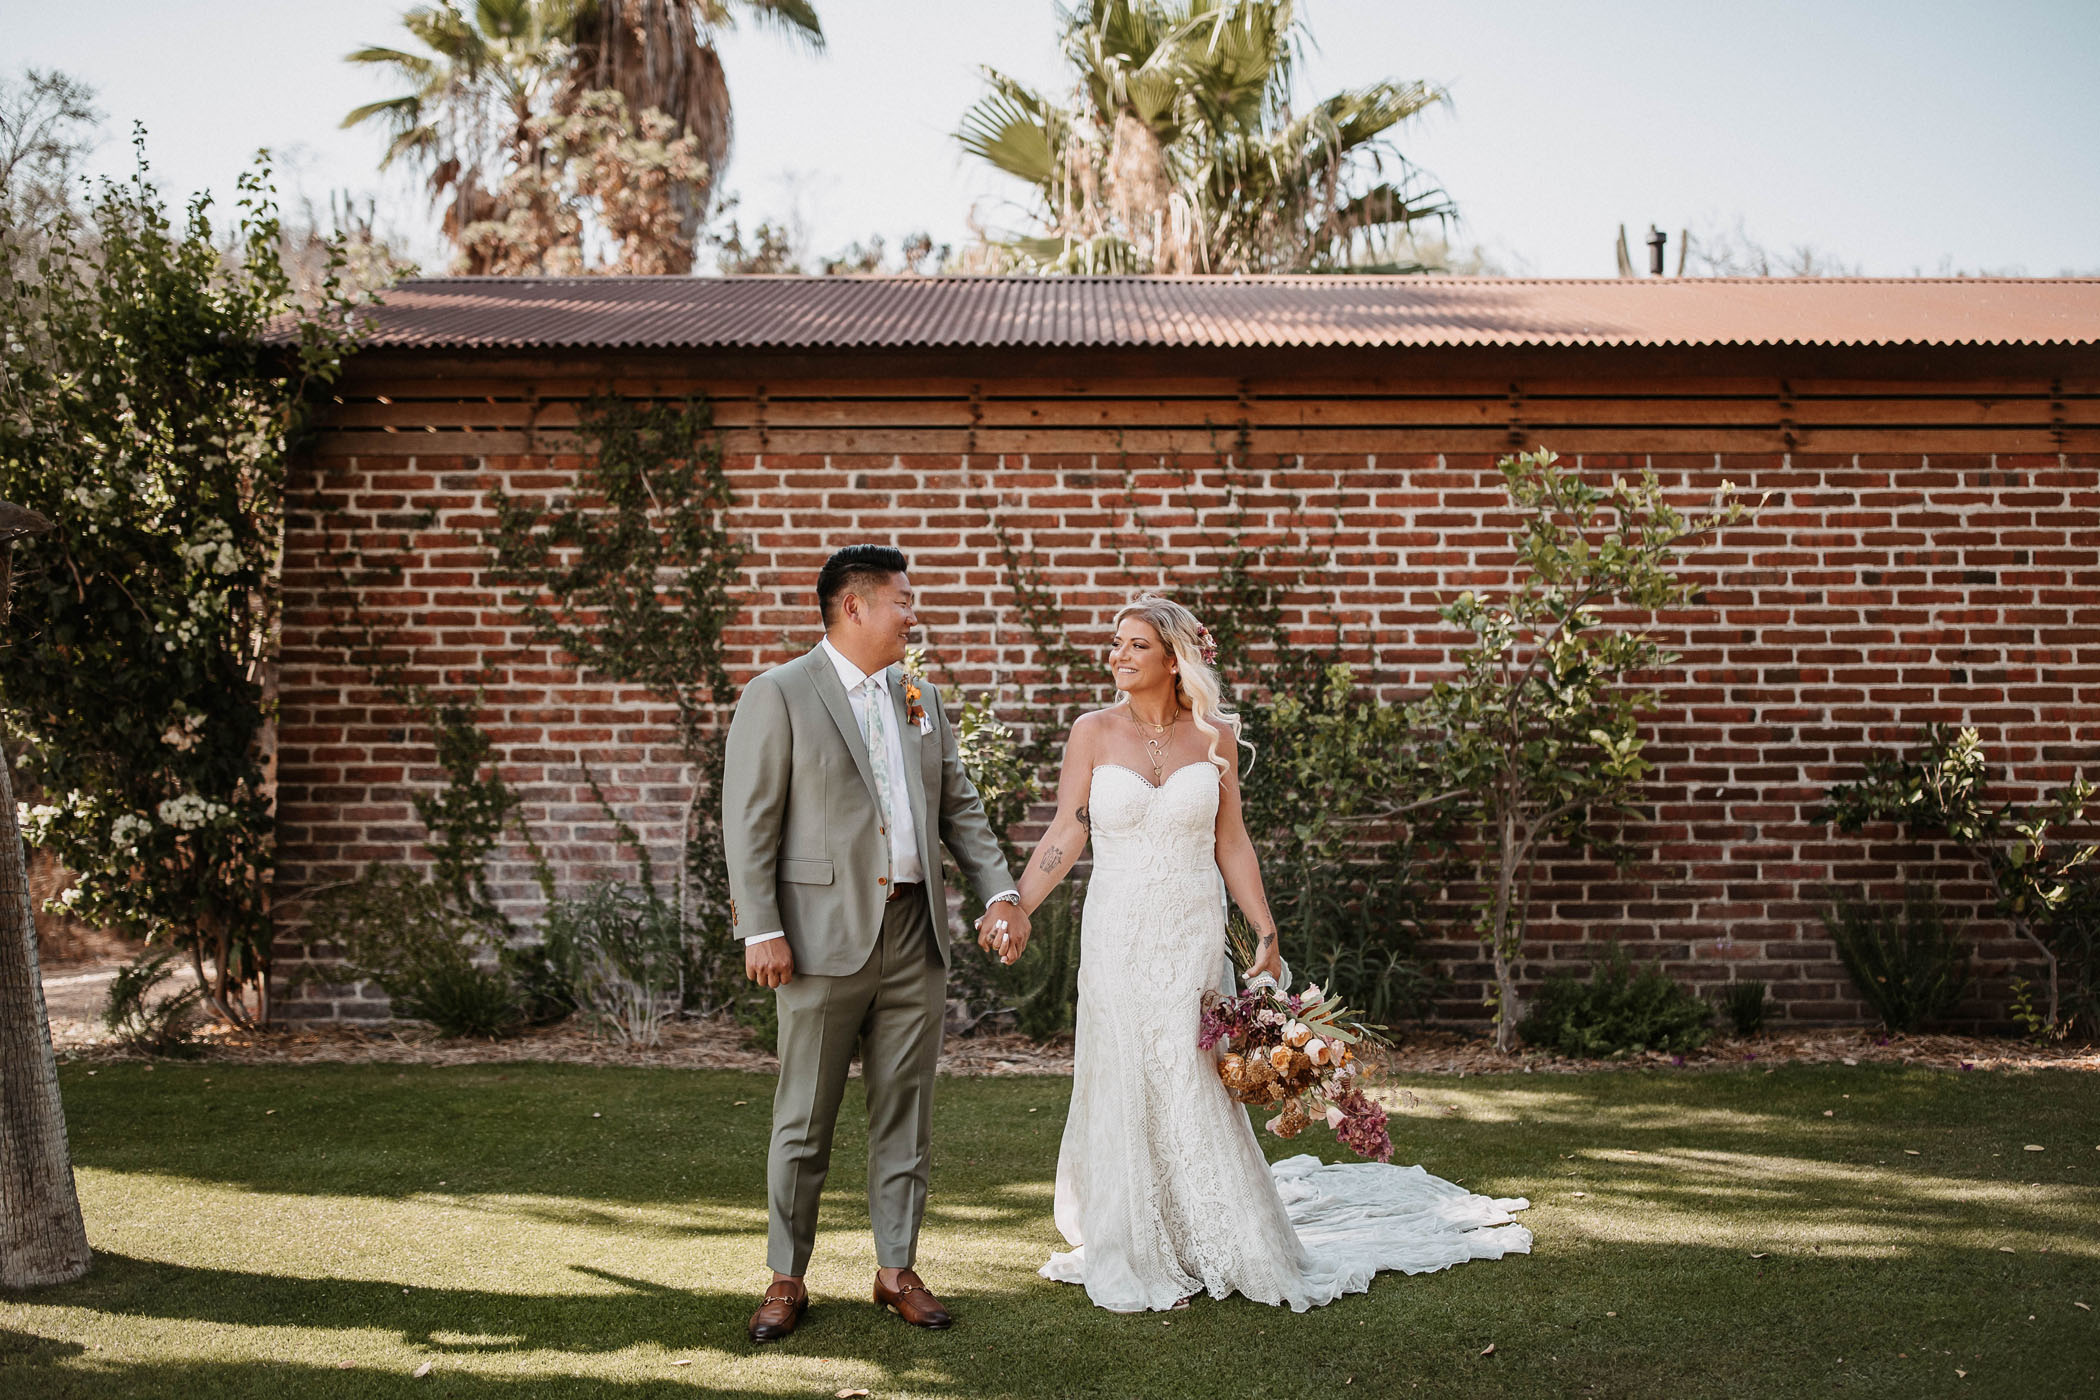 Bride and groom holding hands at their wedding venue